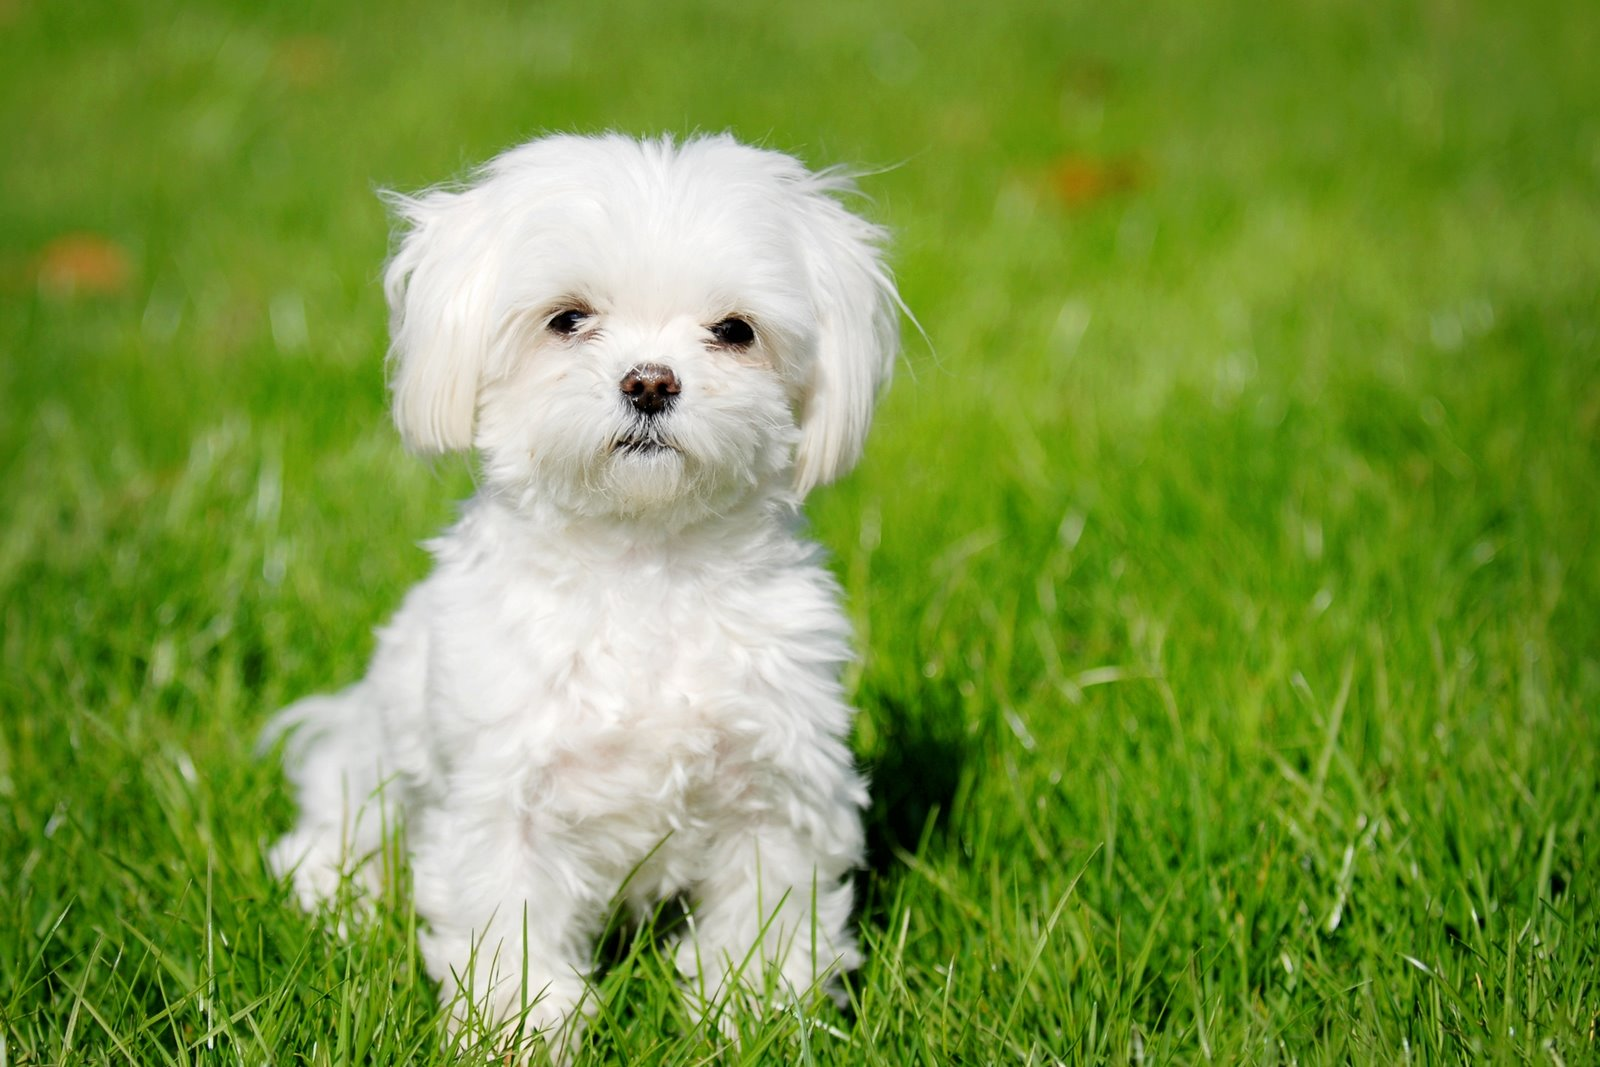 Cute Puppy Dogs: cute maltese puppy